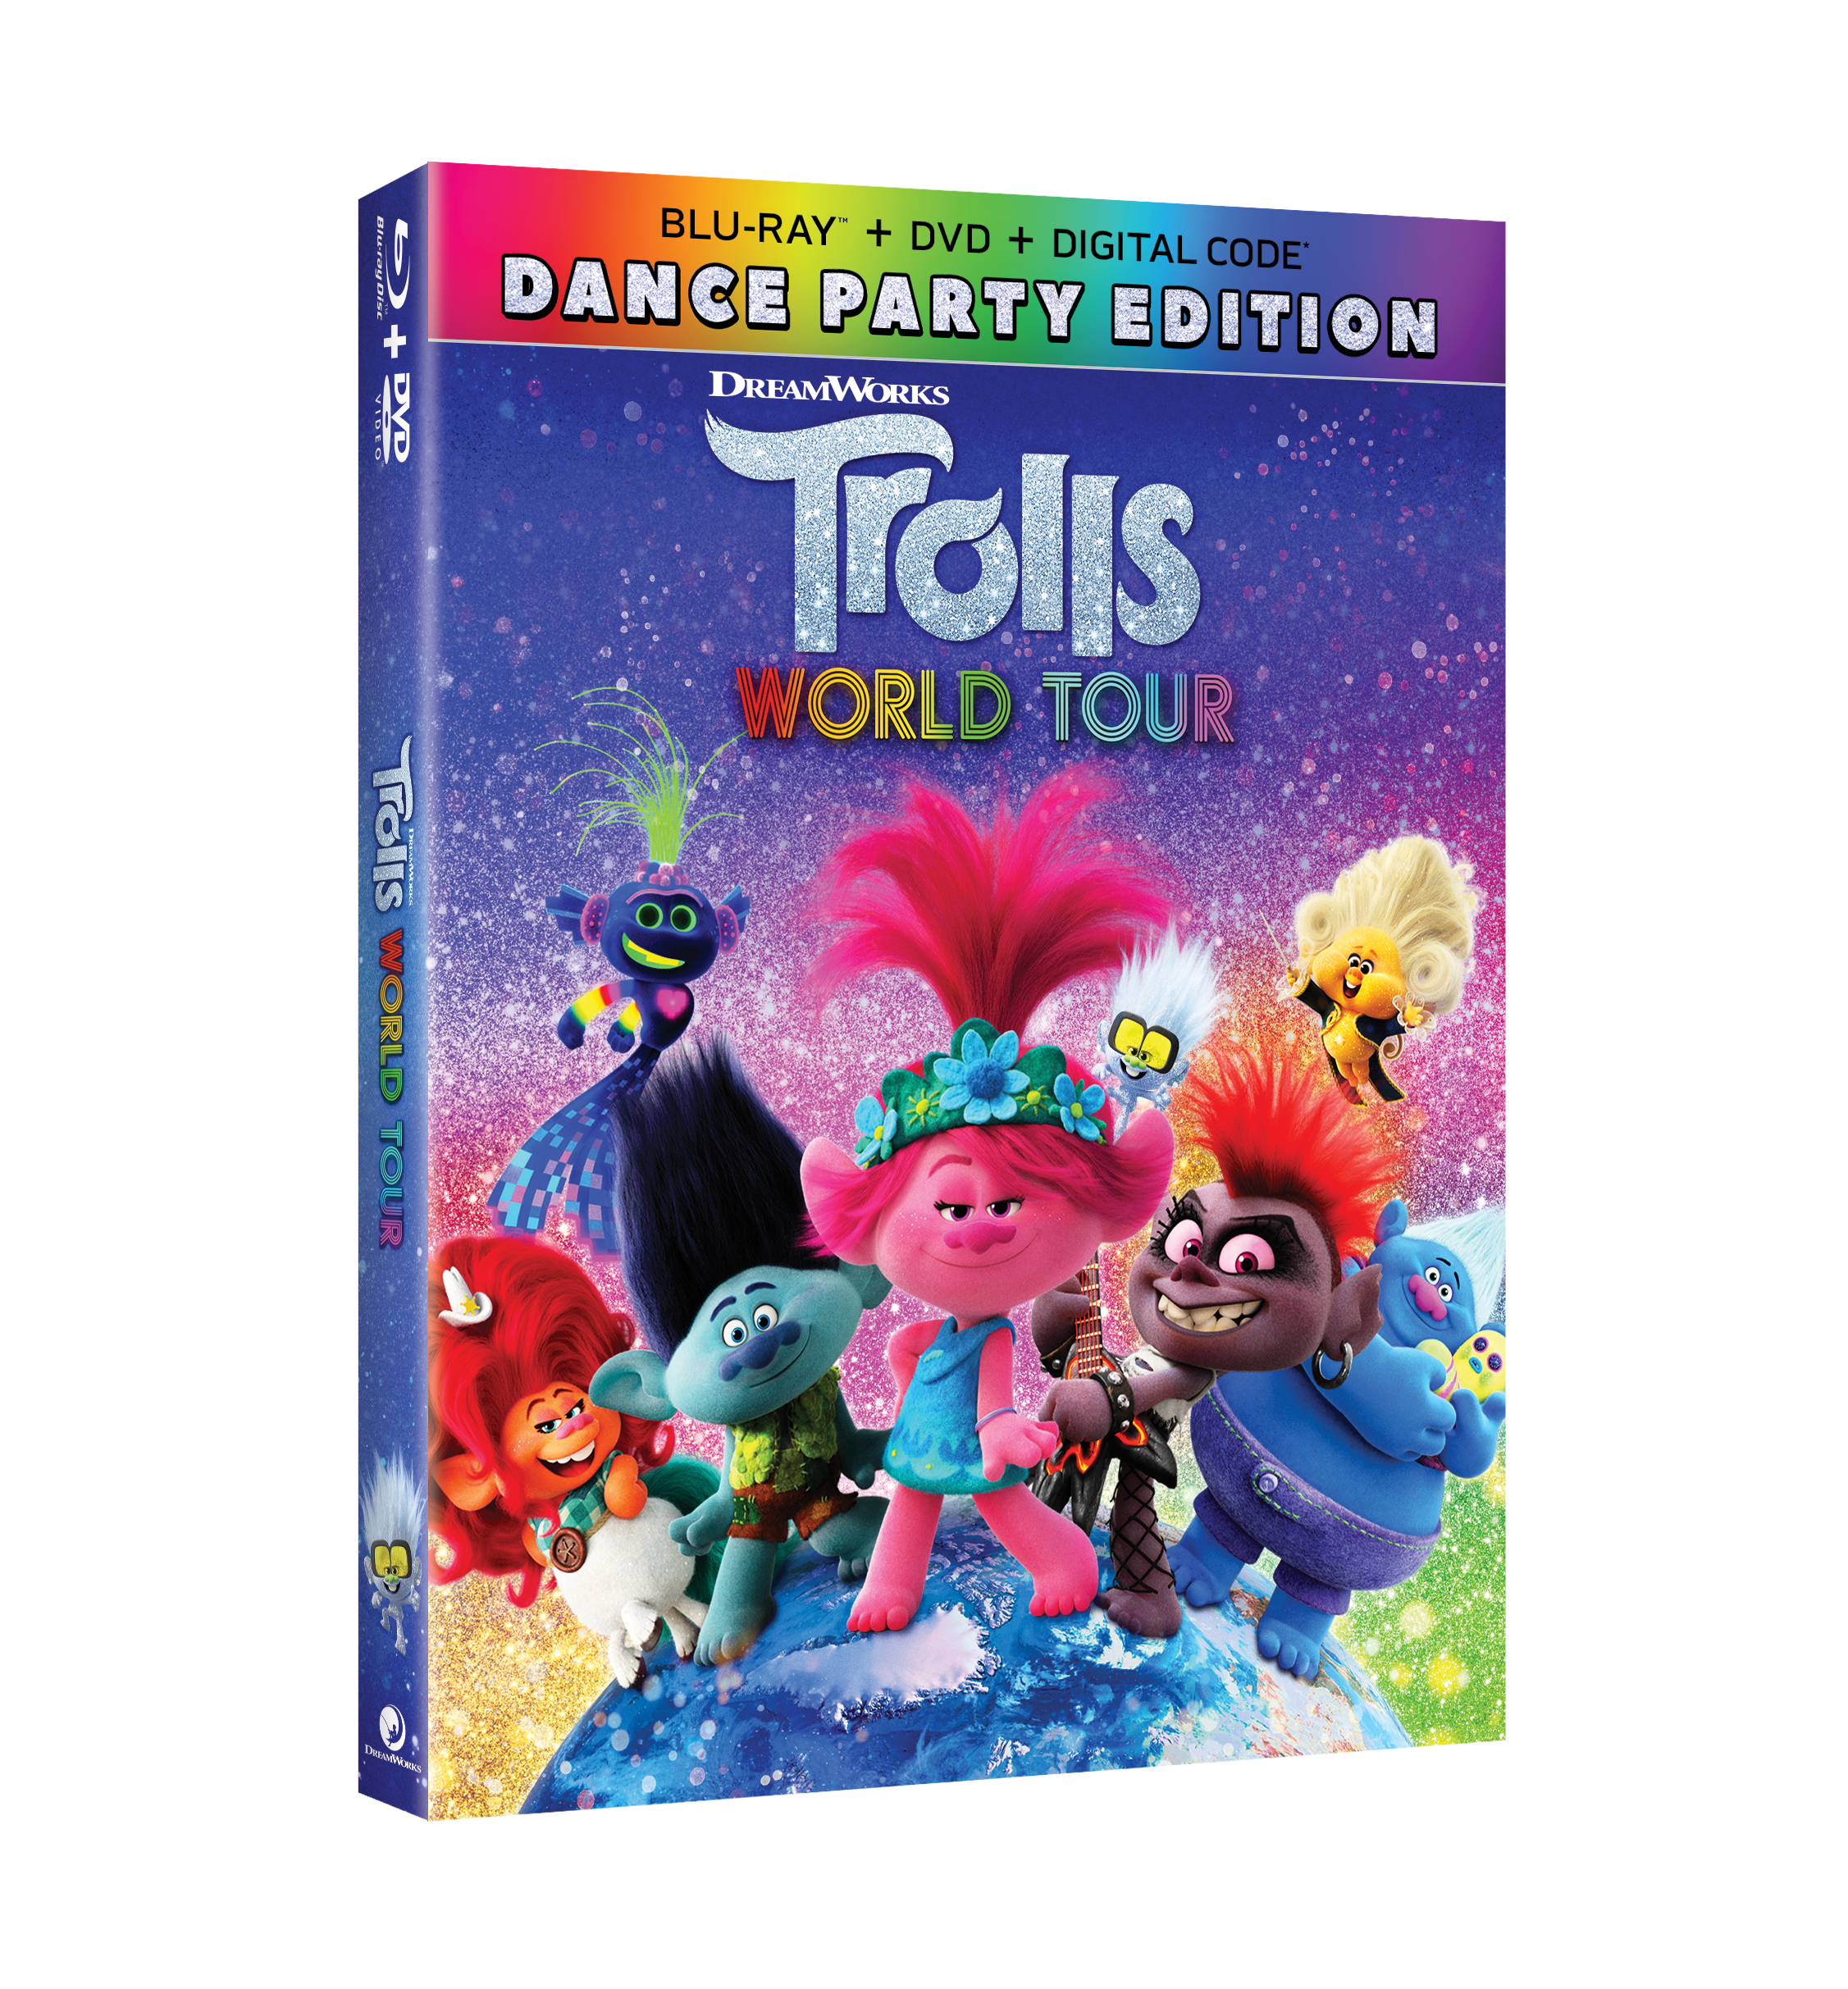 Trolls World Tour Digital, 4K, Blu-Ray, & DVD Release Info!